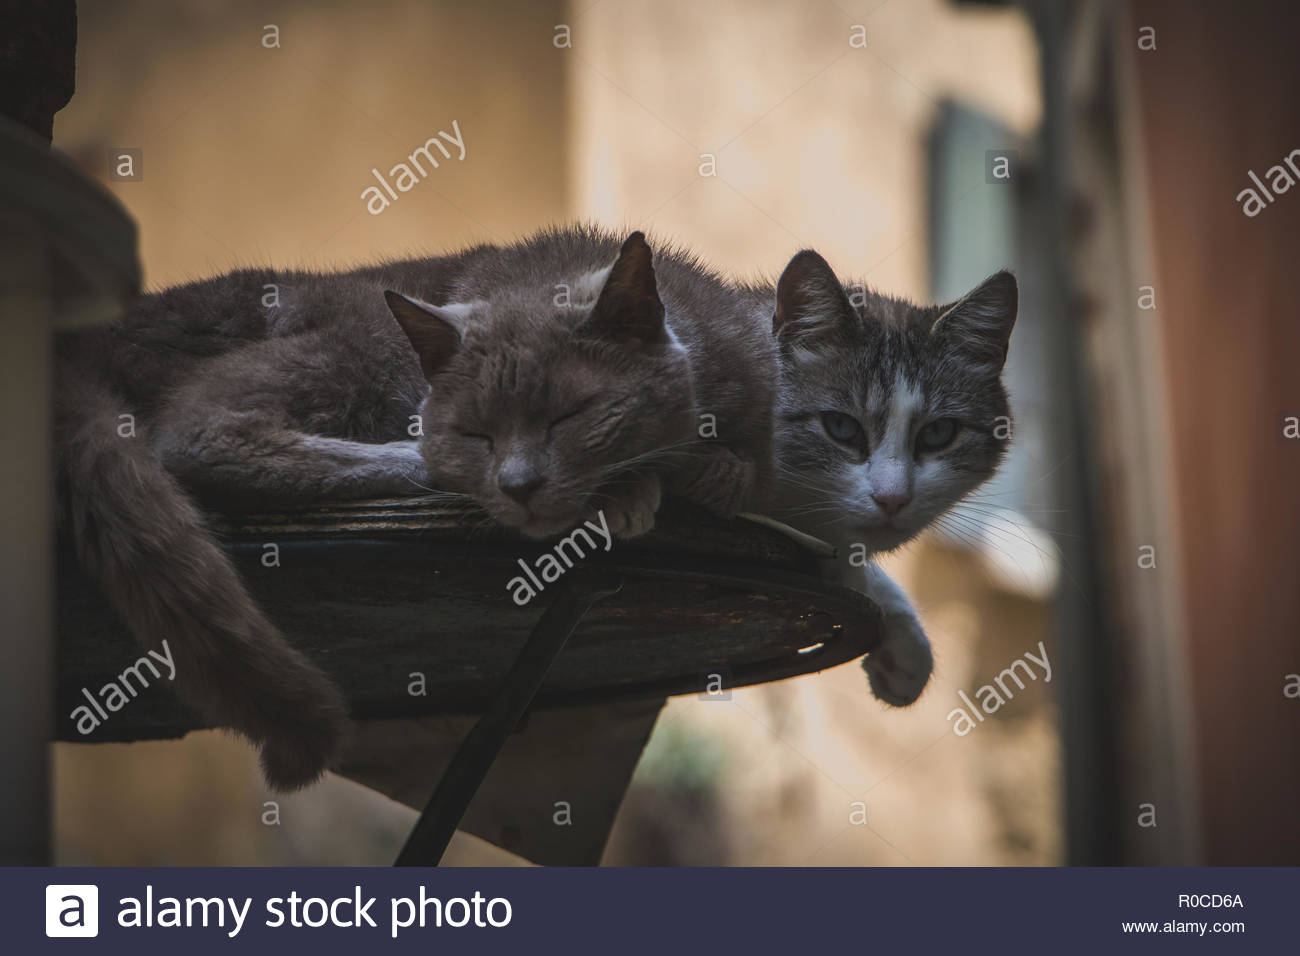 Two Cats in the french Village Nyons Provence domestic cats lazy looking at person cute domestic cat sleeping - Stock Image